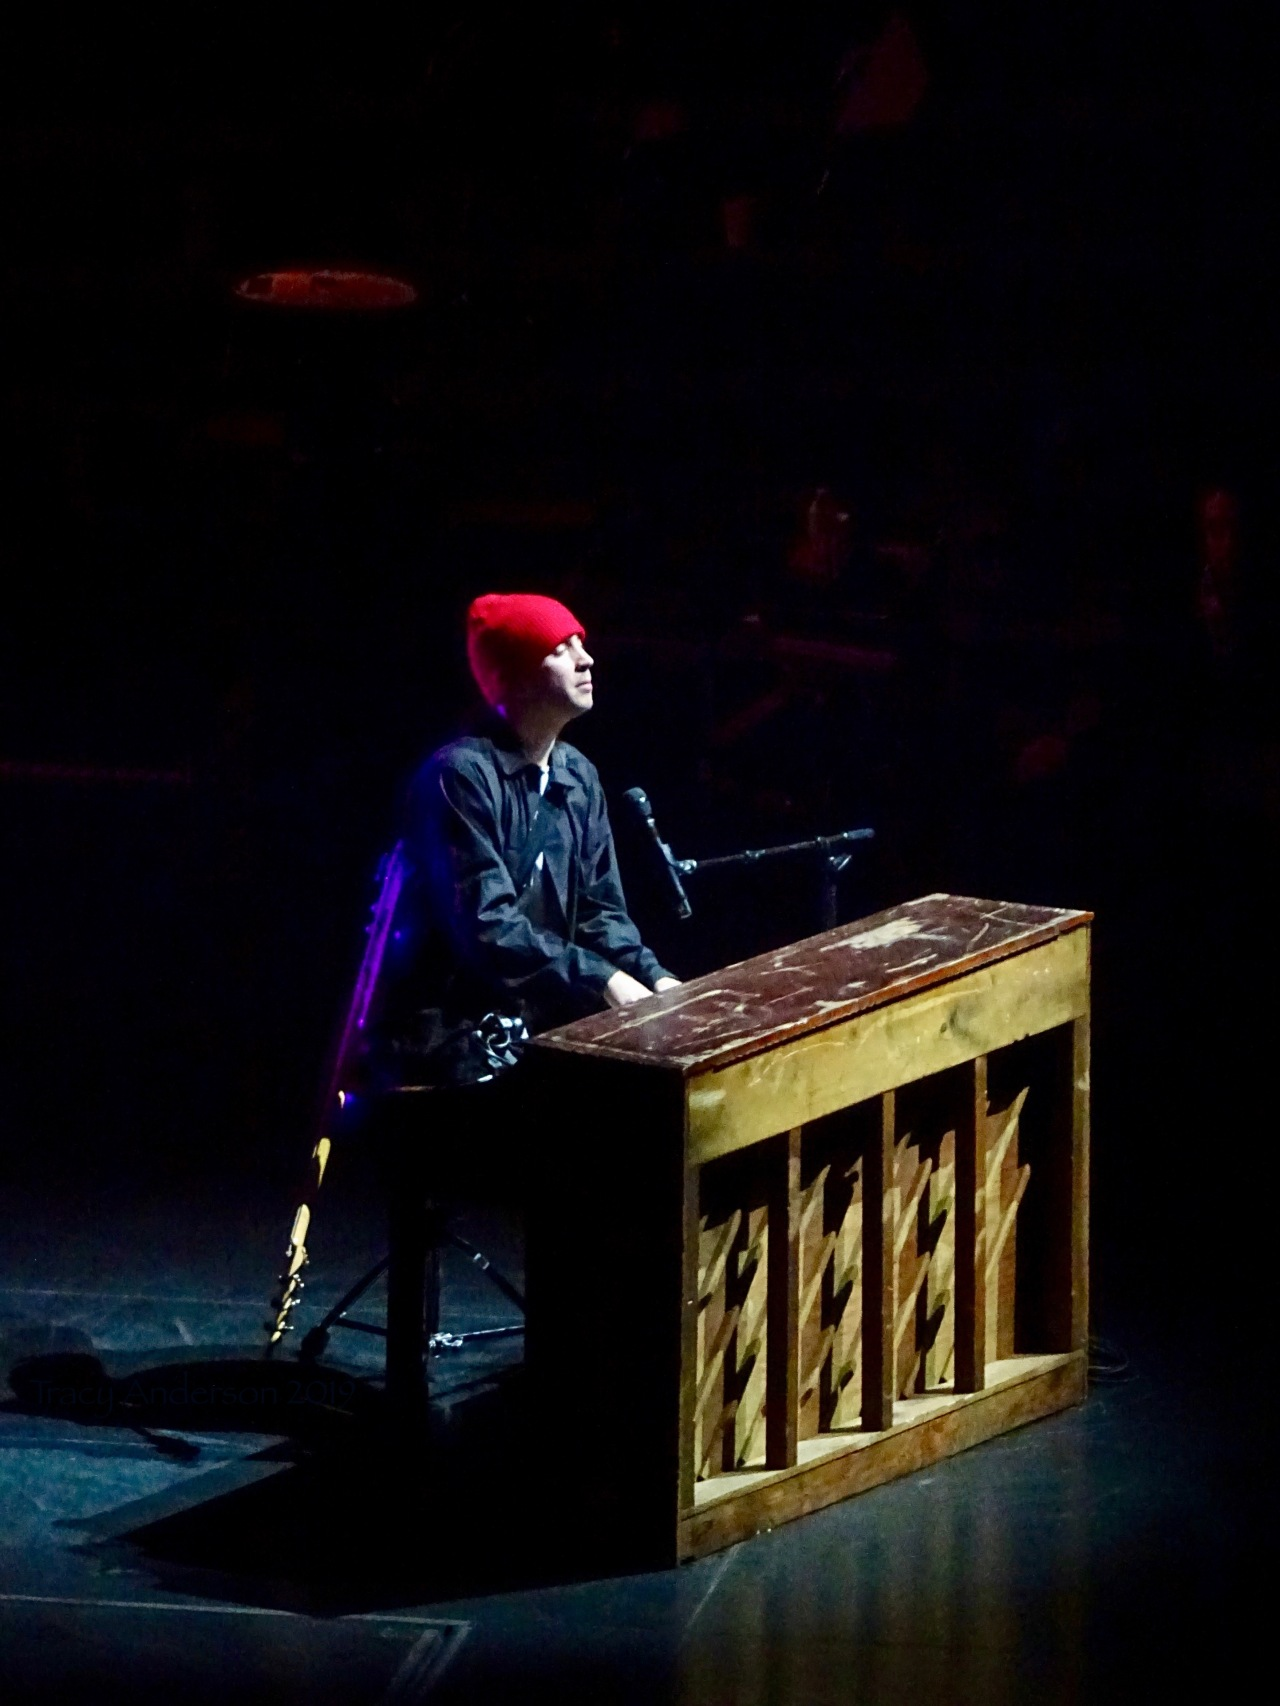 Tyler Joseph Piano Red Hat Twenty One Pilots Bandito Tour Scotiabank Saddledome Calgary May 14 2019